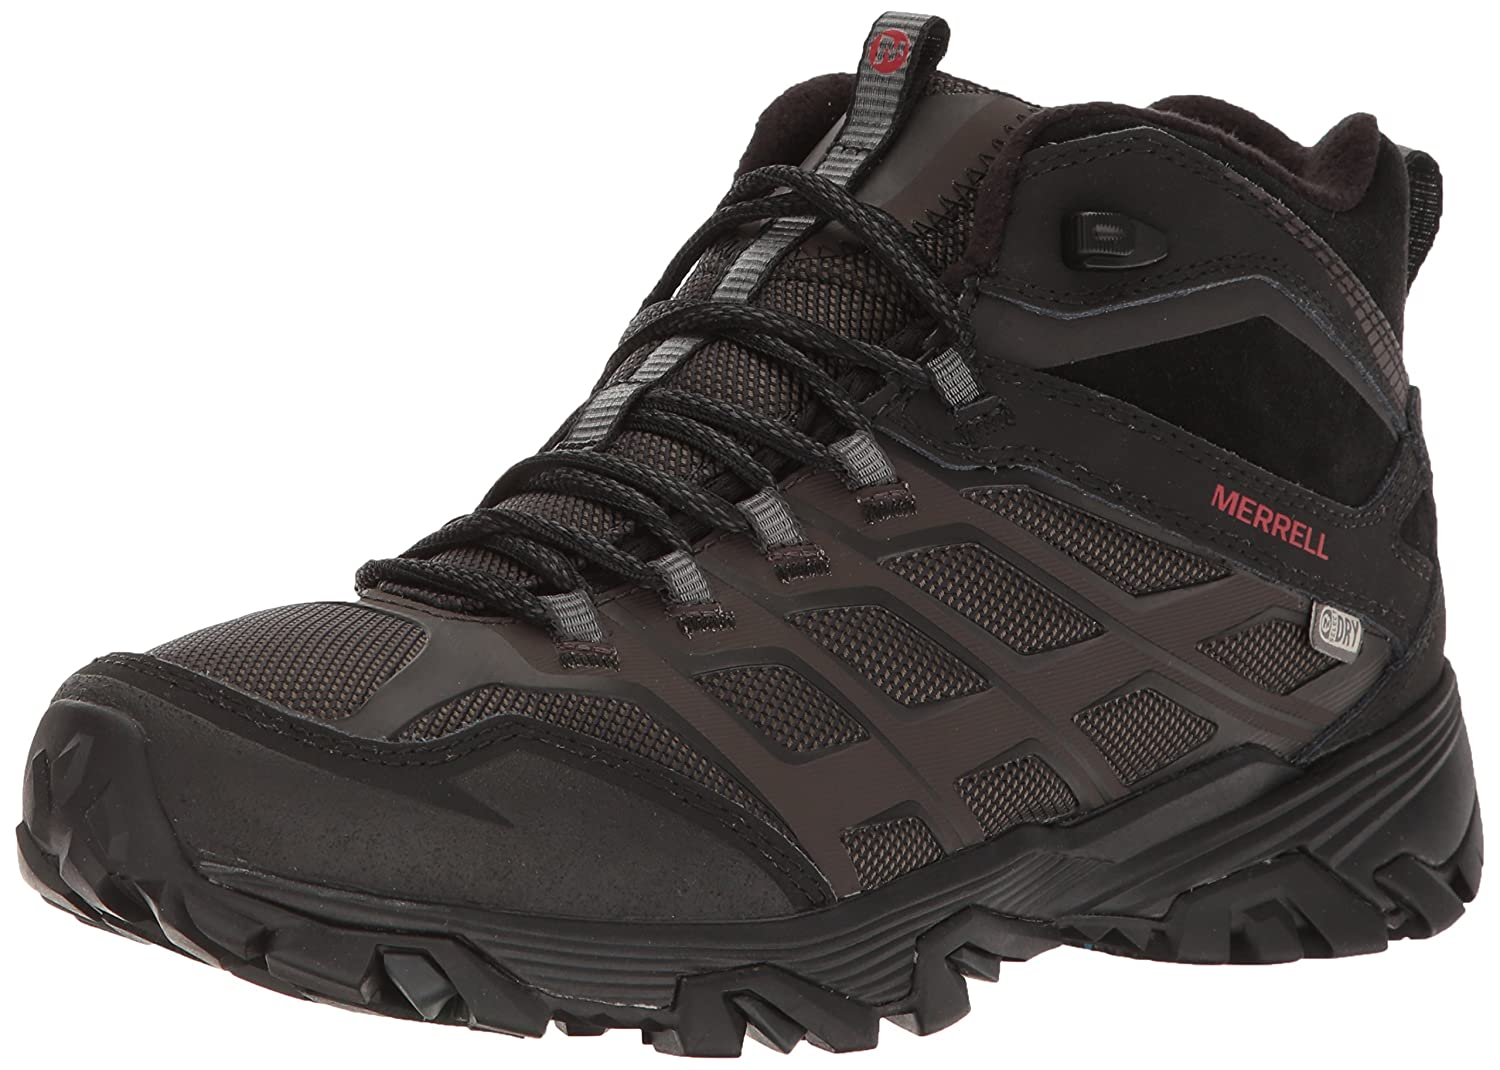 Merrell Men's Moab FST Ice+ Thermo Hiking Boot 11.5 D(M) US|Black